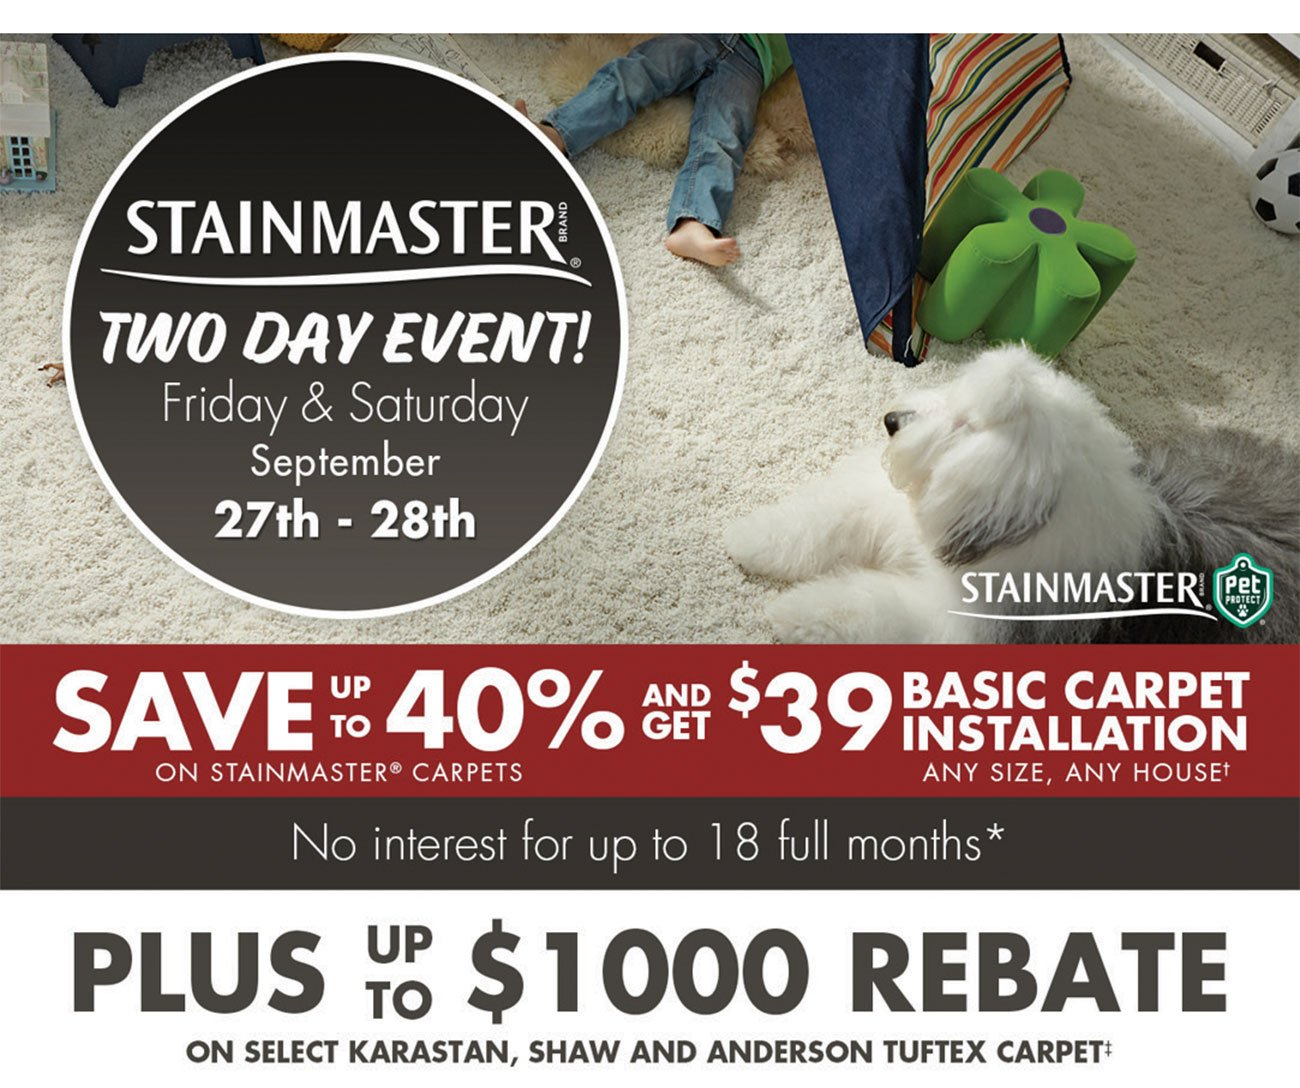 Stainmaster-Event-UIV